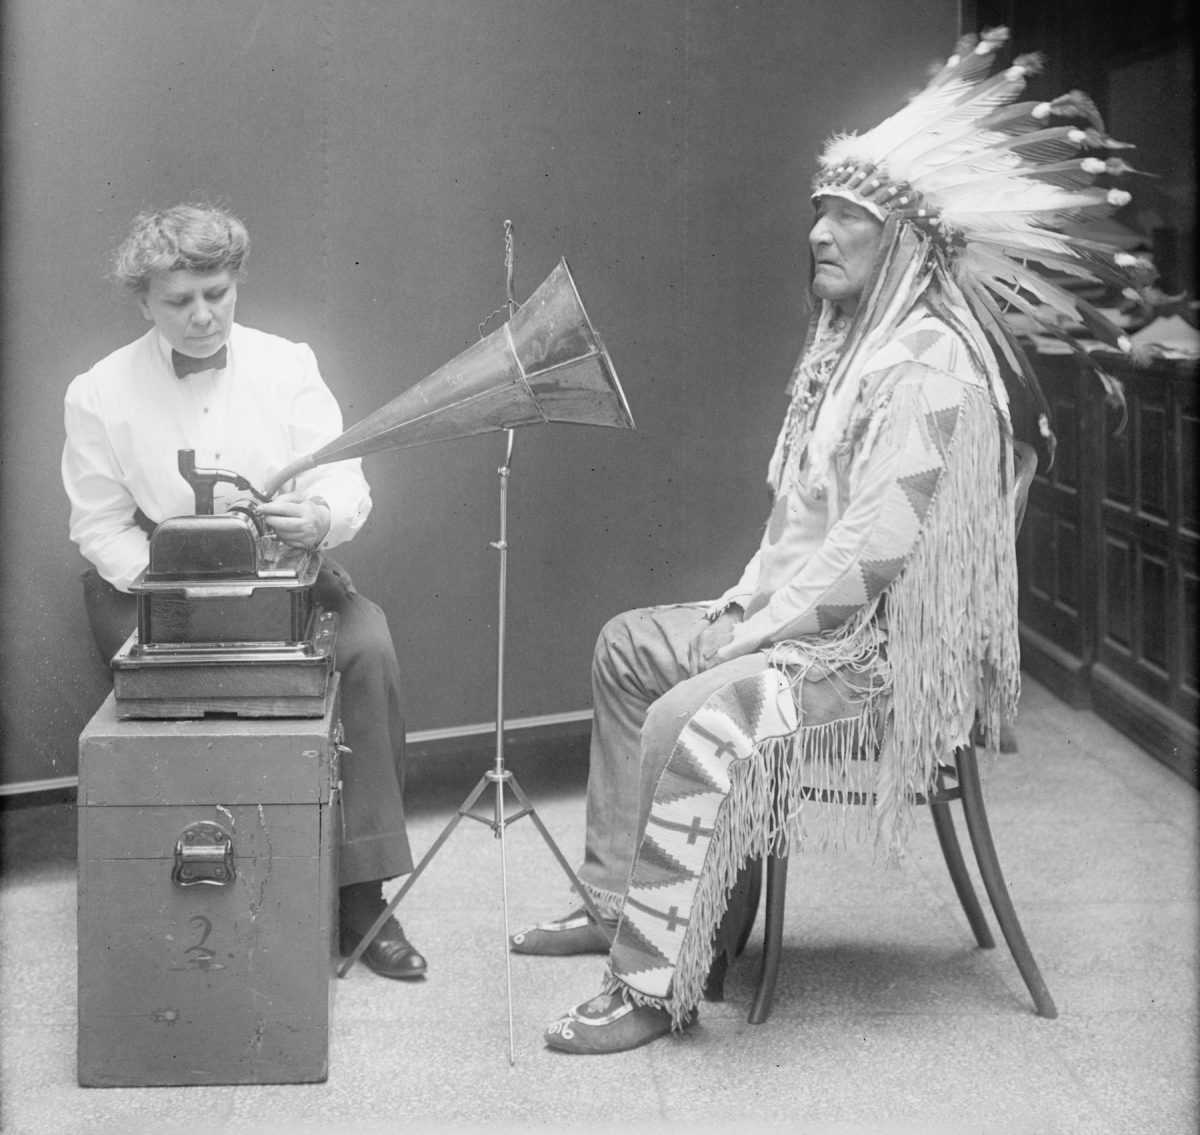 American anthropologist and ethnographer Frances Densmore records the Blackfoot chief Mountain Chief in 1916 for the Bureau of American Ethnology. Library of Congress.